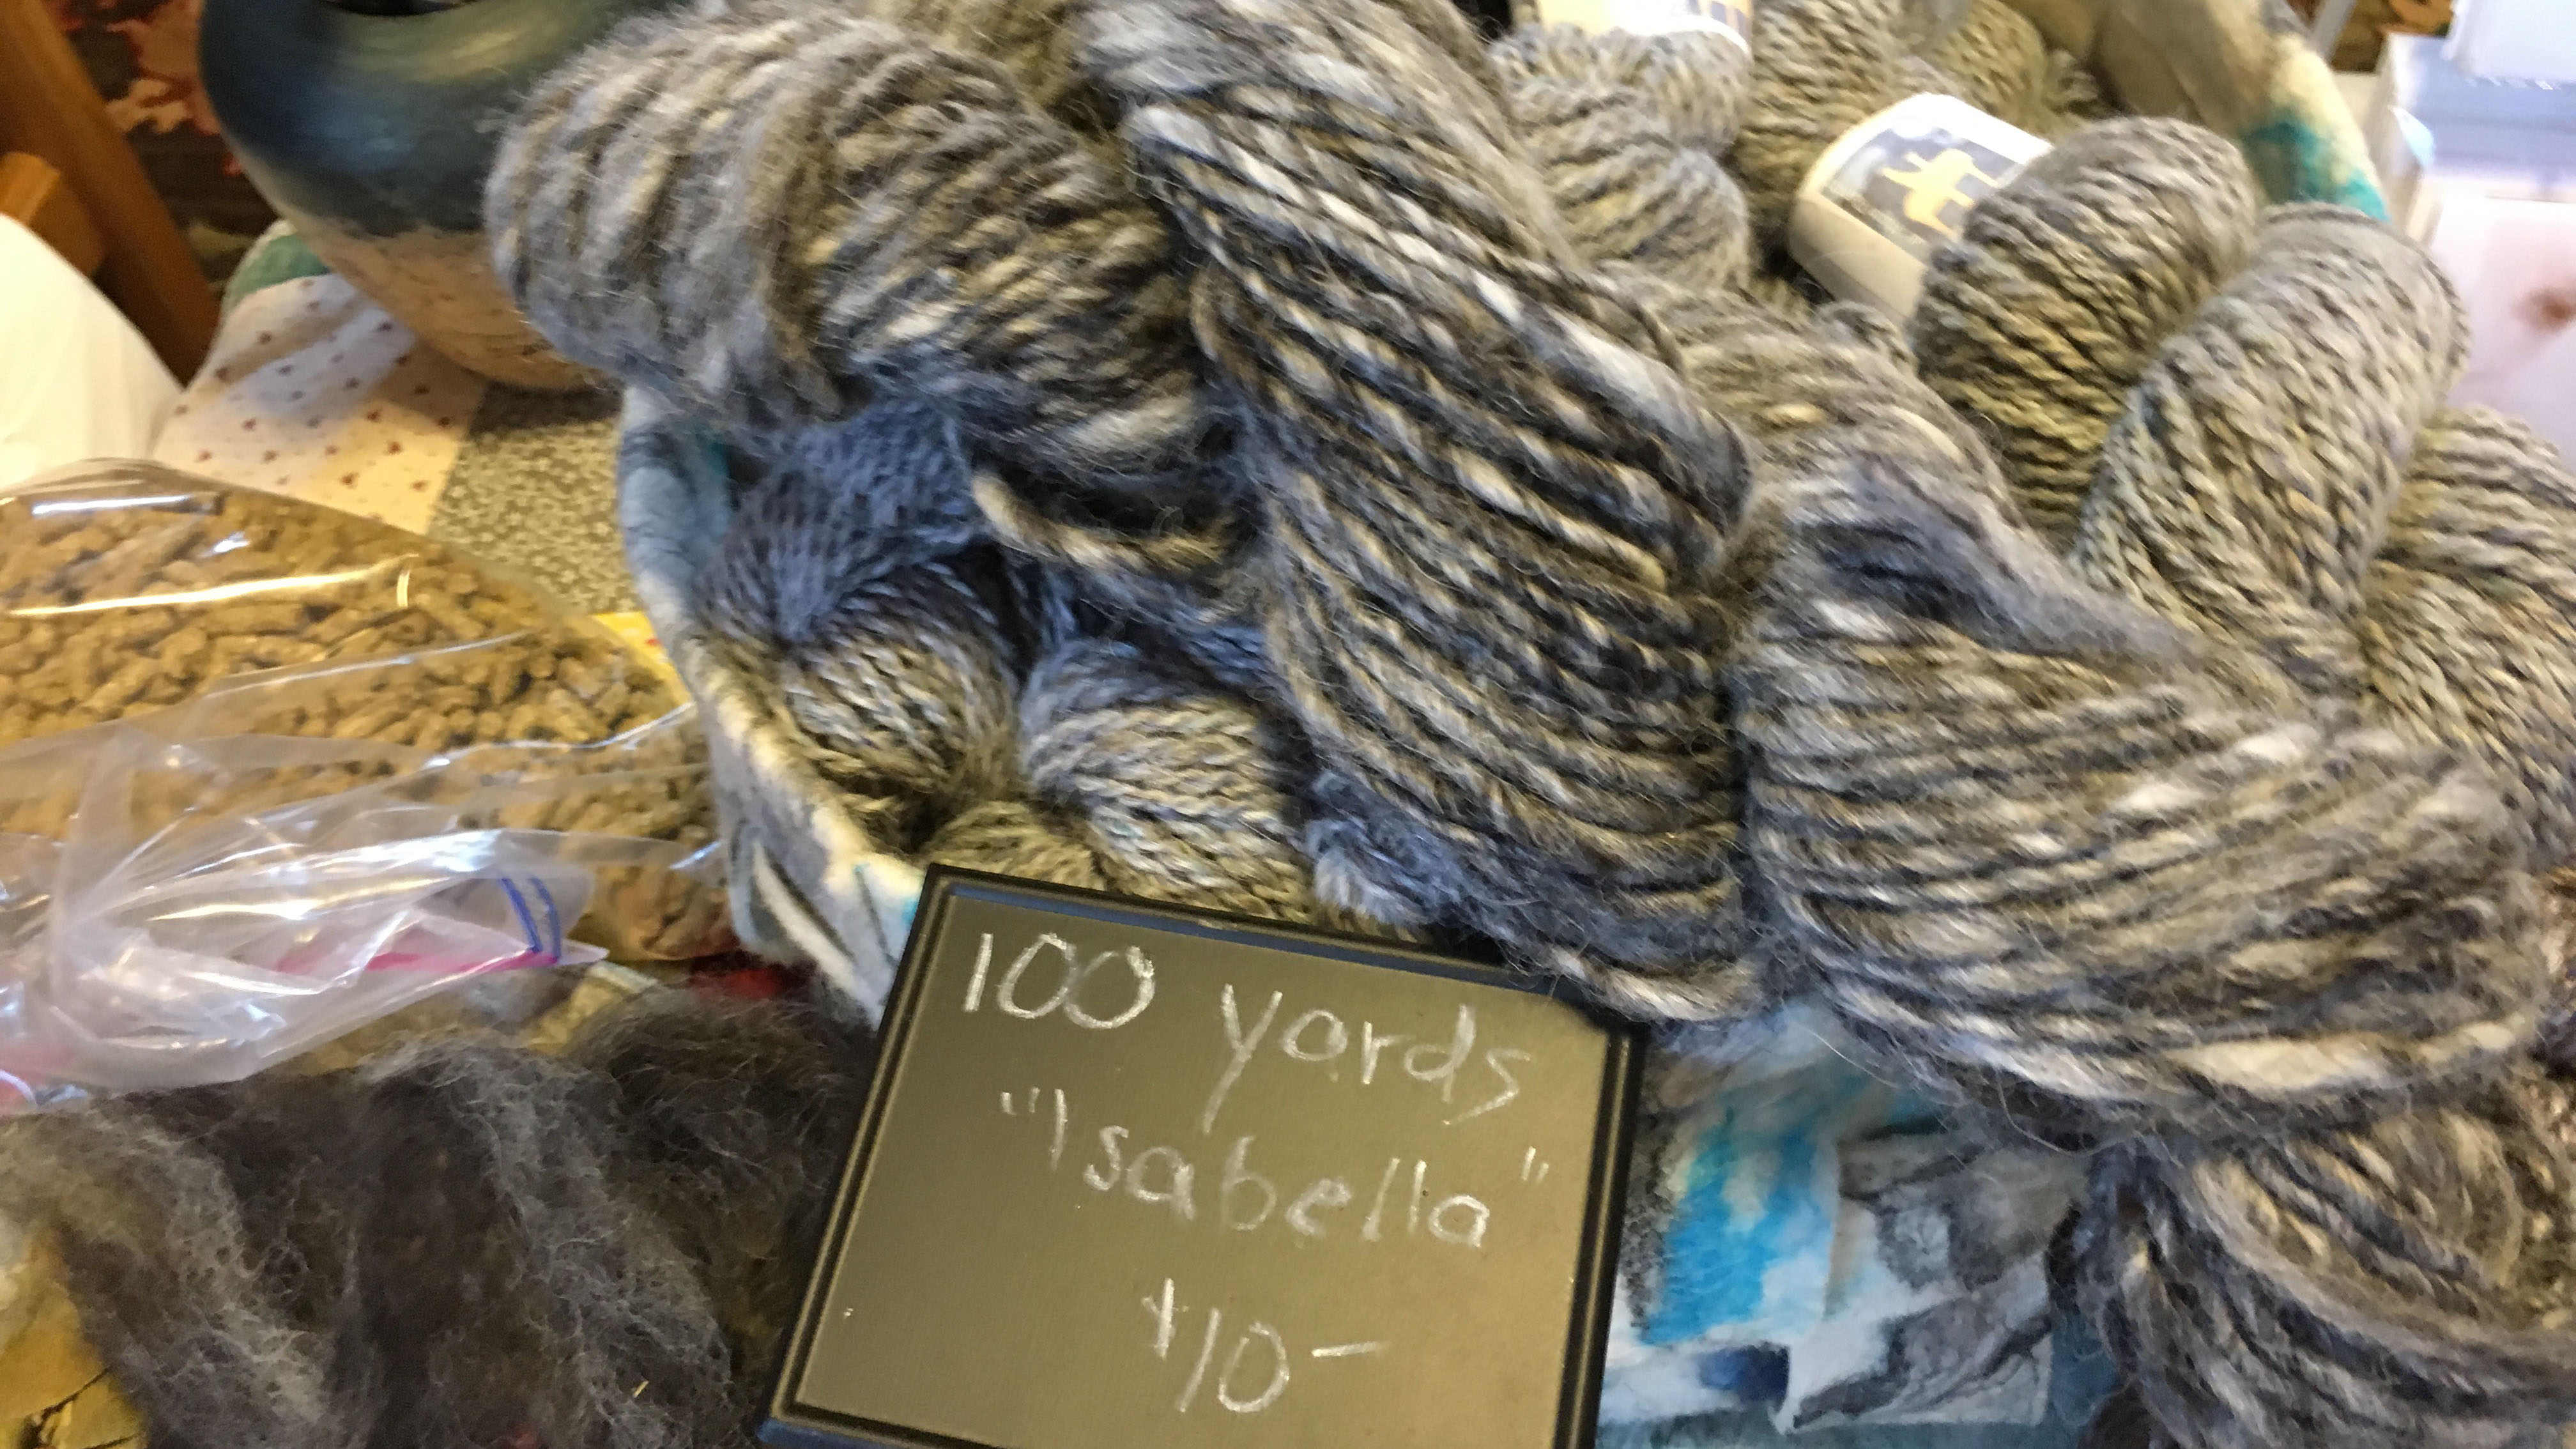 Many of the yarns are named after the alpaca the fleece came from.